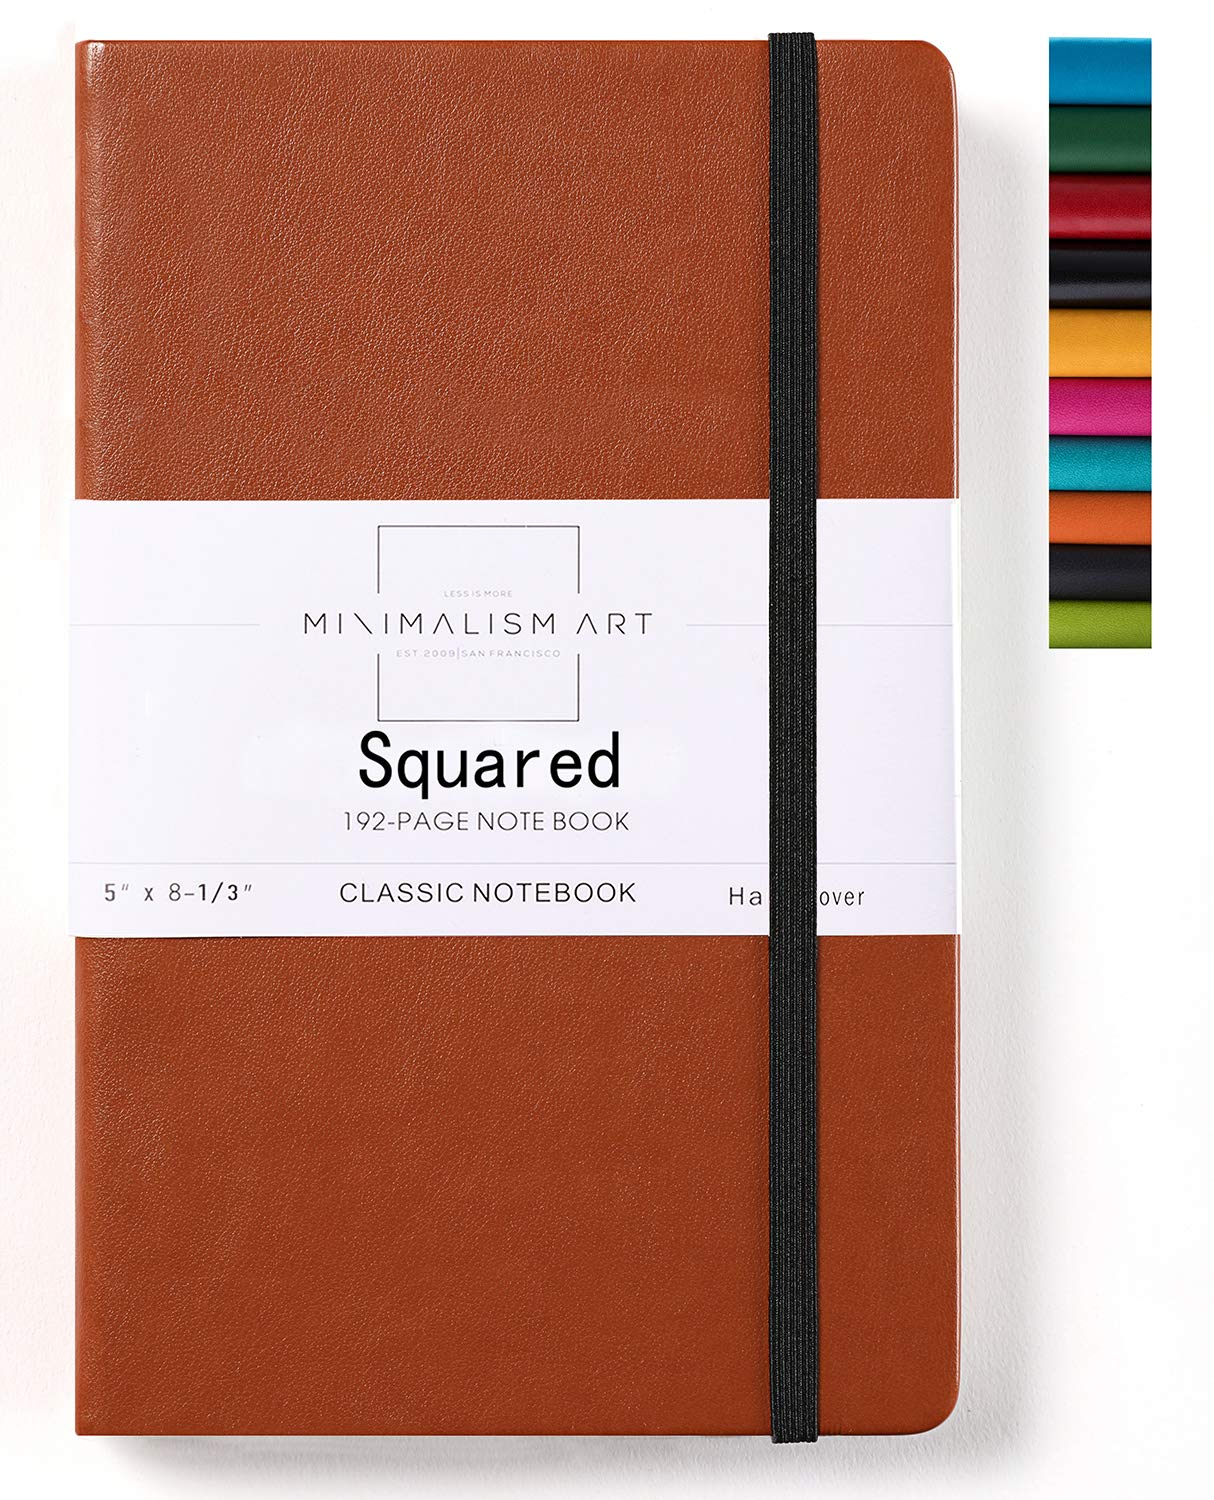 Minimalism Art, Classic Notebook Journal, A5 Size 5 X 8.3 inches, Brown, Squared Grid Page, 192 Pages, Hard Cover, Fine PU Leather, Inner Pocket, Quality Paper-100gsm, Designed in San Francisco